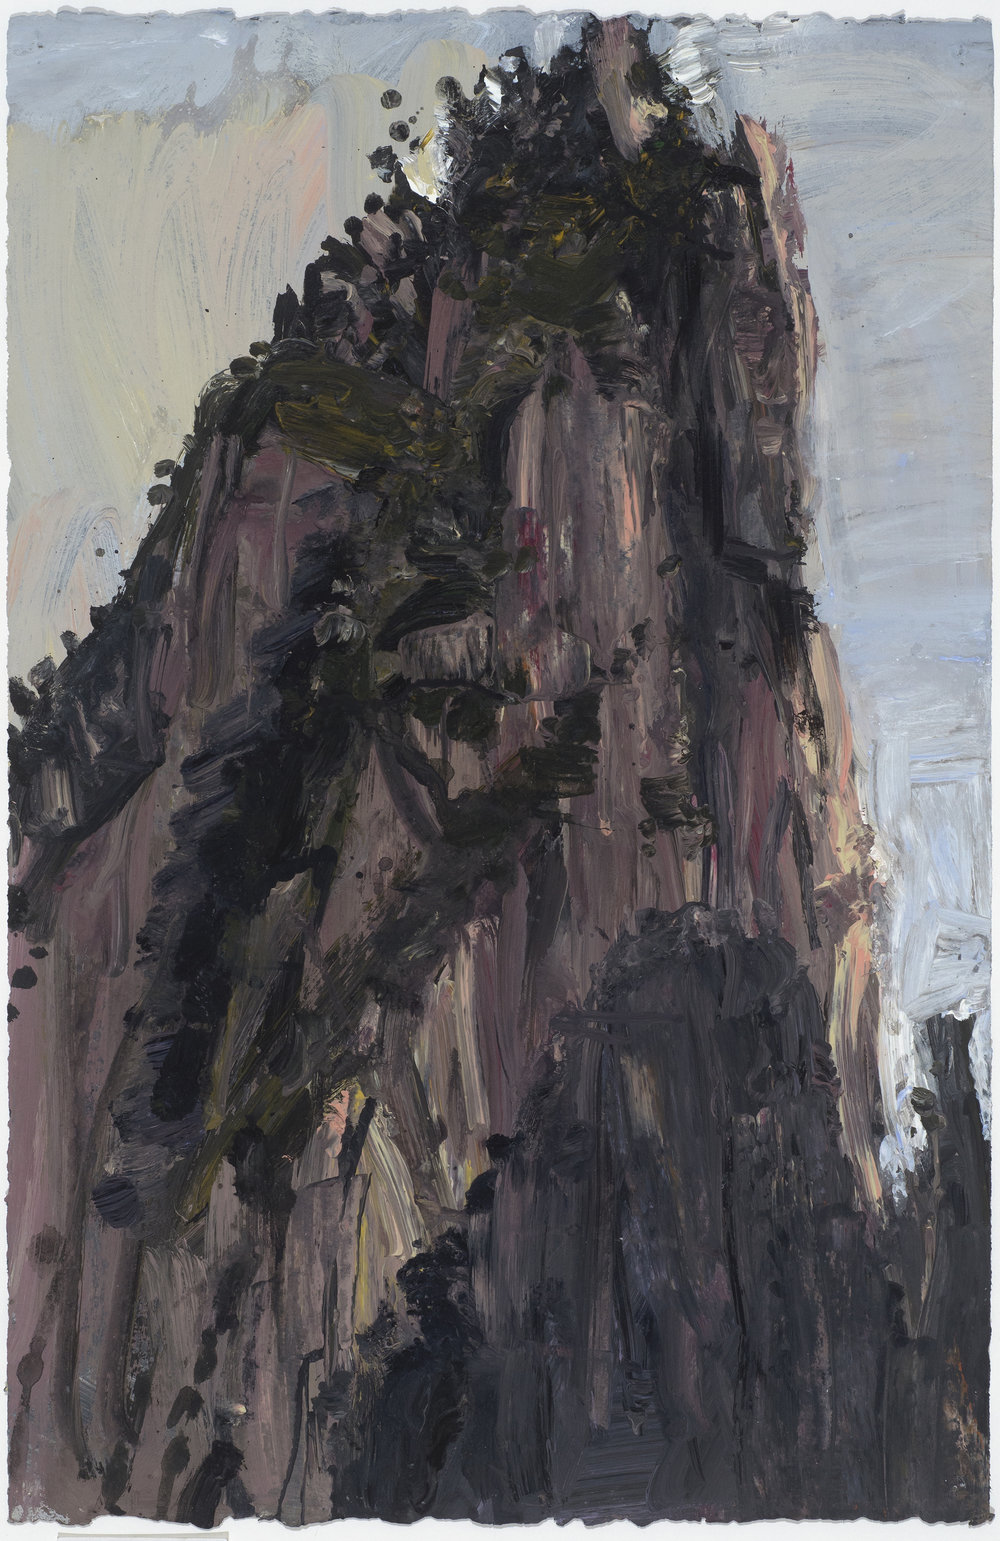 Vertical tower 8/10/16  垂直的塔8/10/16   Euan Macleod , 2016  Acrylic on paper, 58 x 38 cm, HKD 14,800 framed